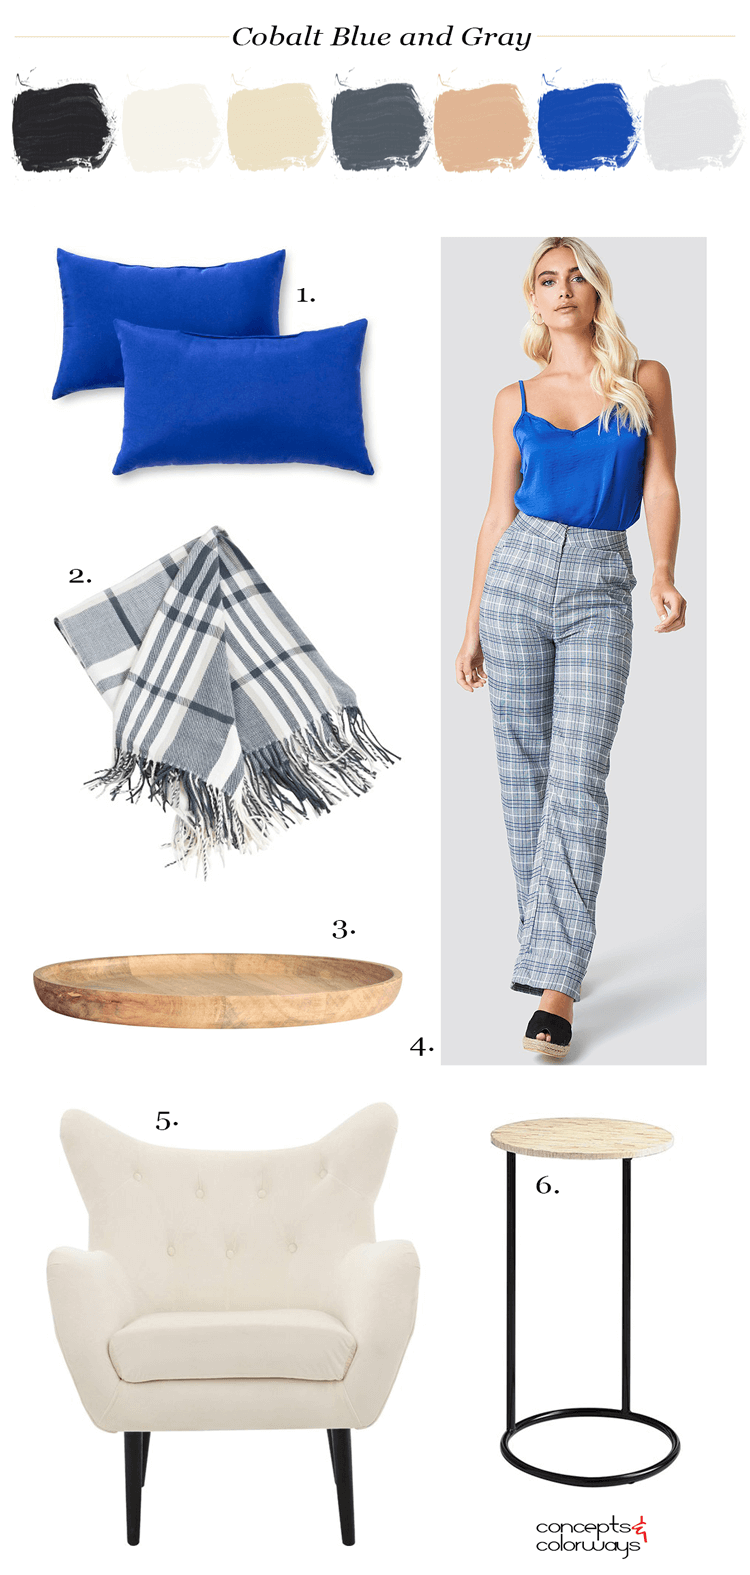 cobalt blue, plaid pattern, natural wood, blue throw pillows, plaid throw, plaid blanket, plaid throw blanket, wooden tray, plaid pants, blue and gray, cobalt blue top, pantone palace blue, warm tan, cool gray, blonde, ivory, black, round side tale, modern wingback chair